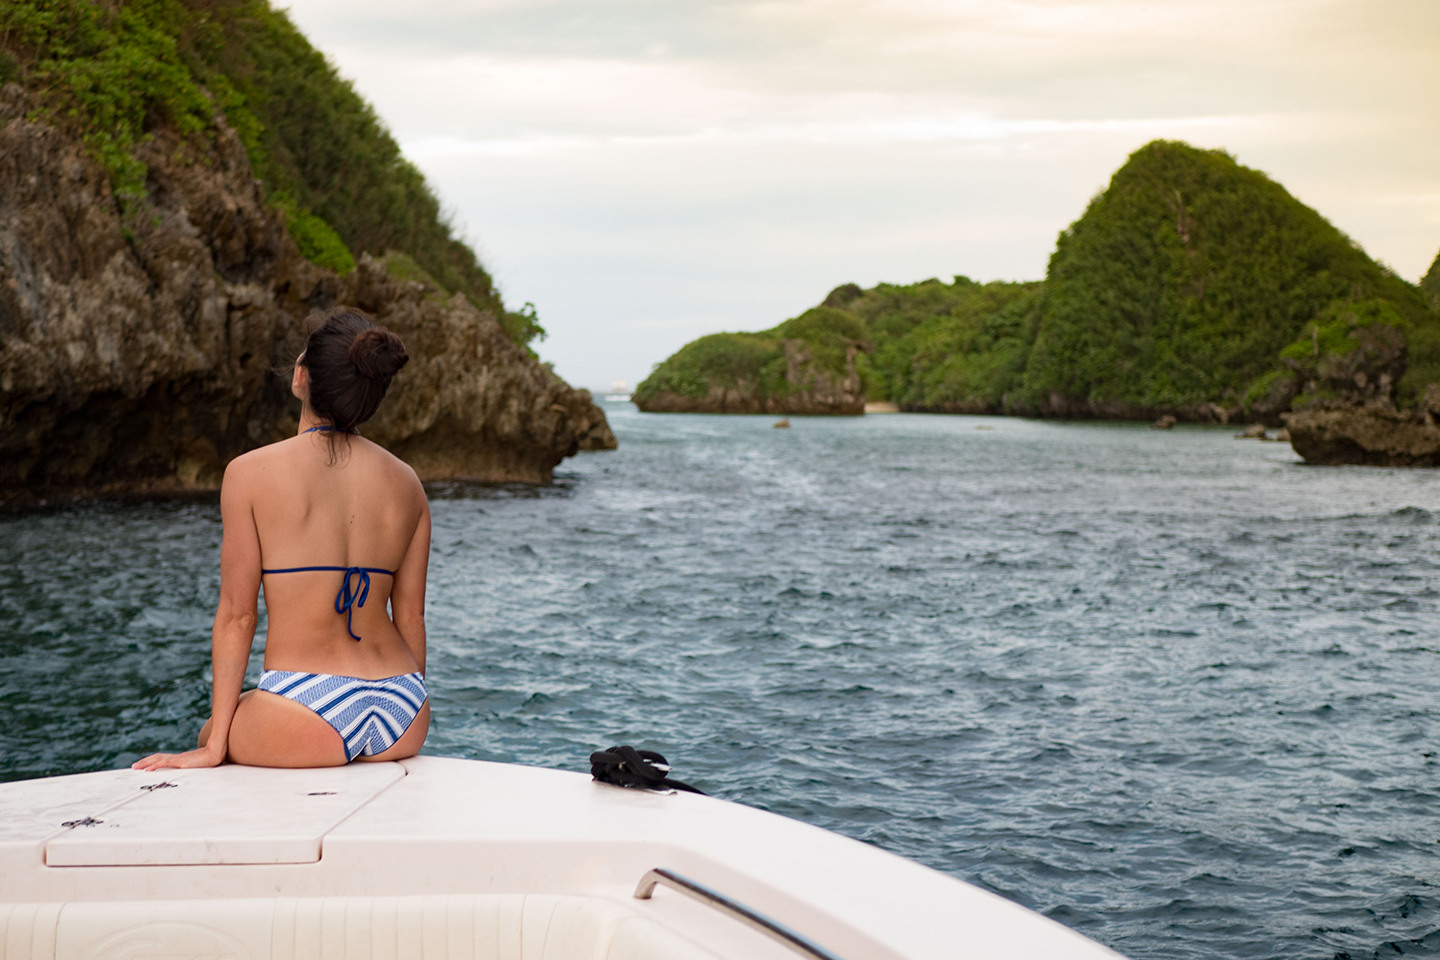 a woman in a bikini sitting at the front of a boat, with tall rocks in the distance